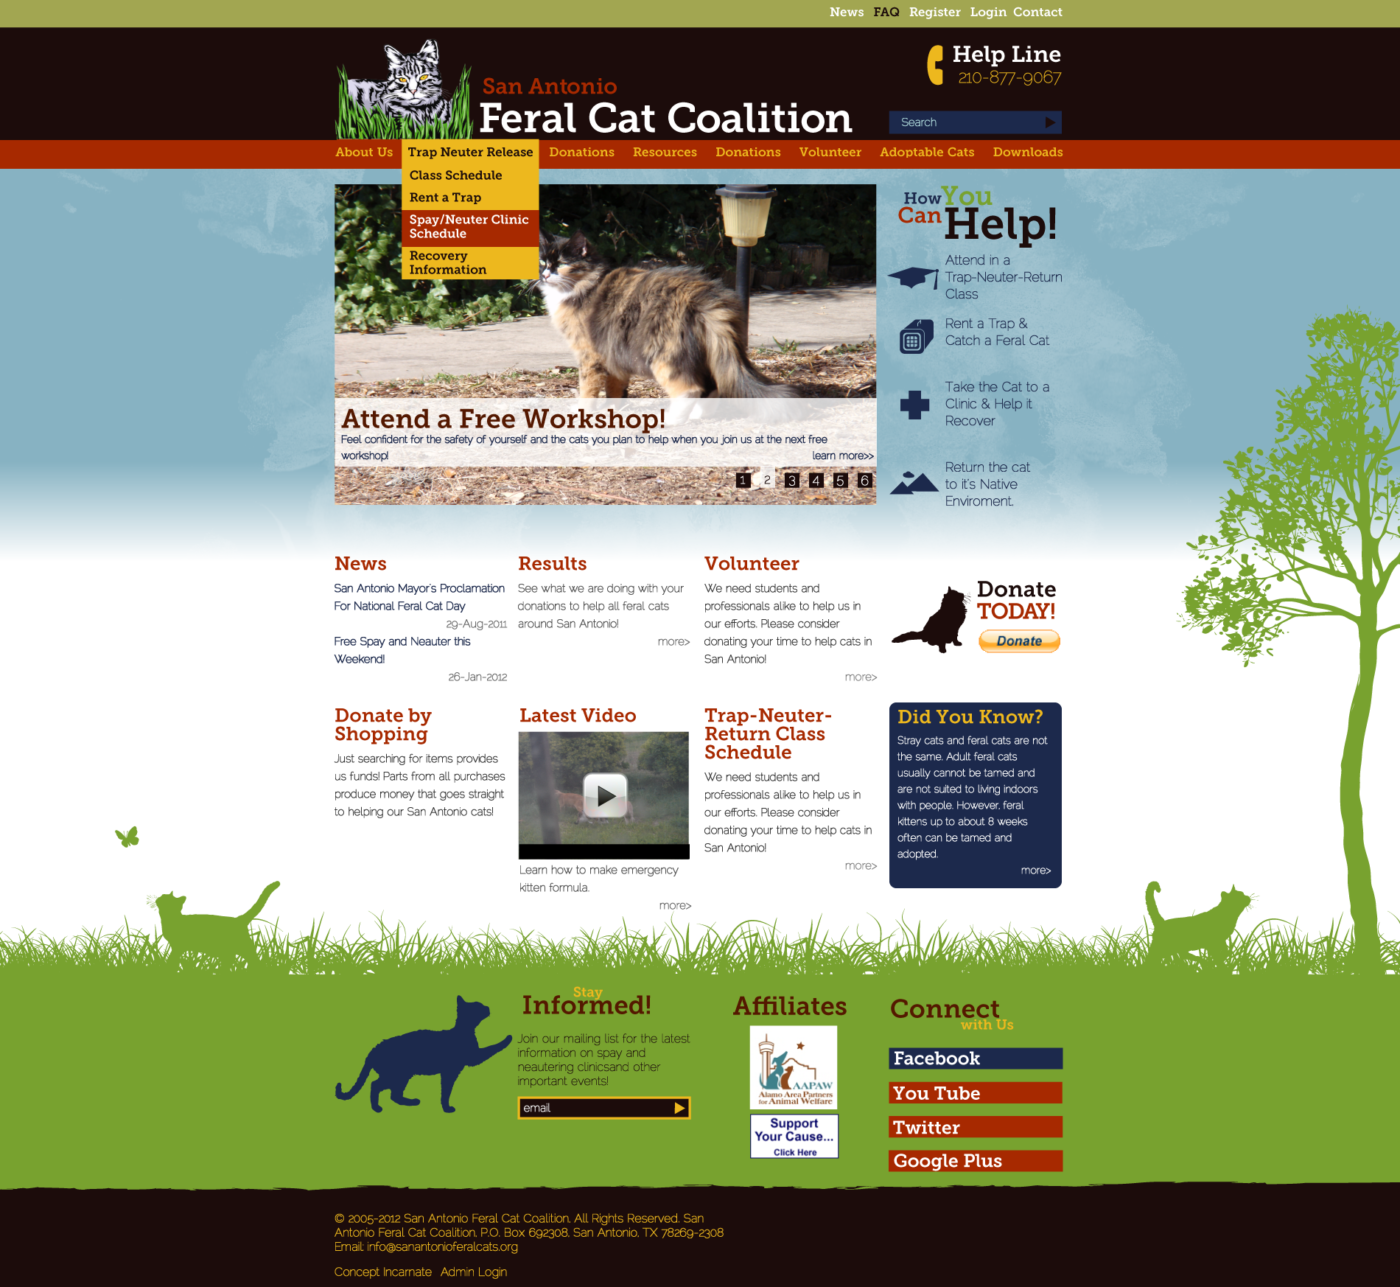 San Antonio Feral Cat Coalition Website Design